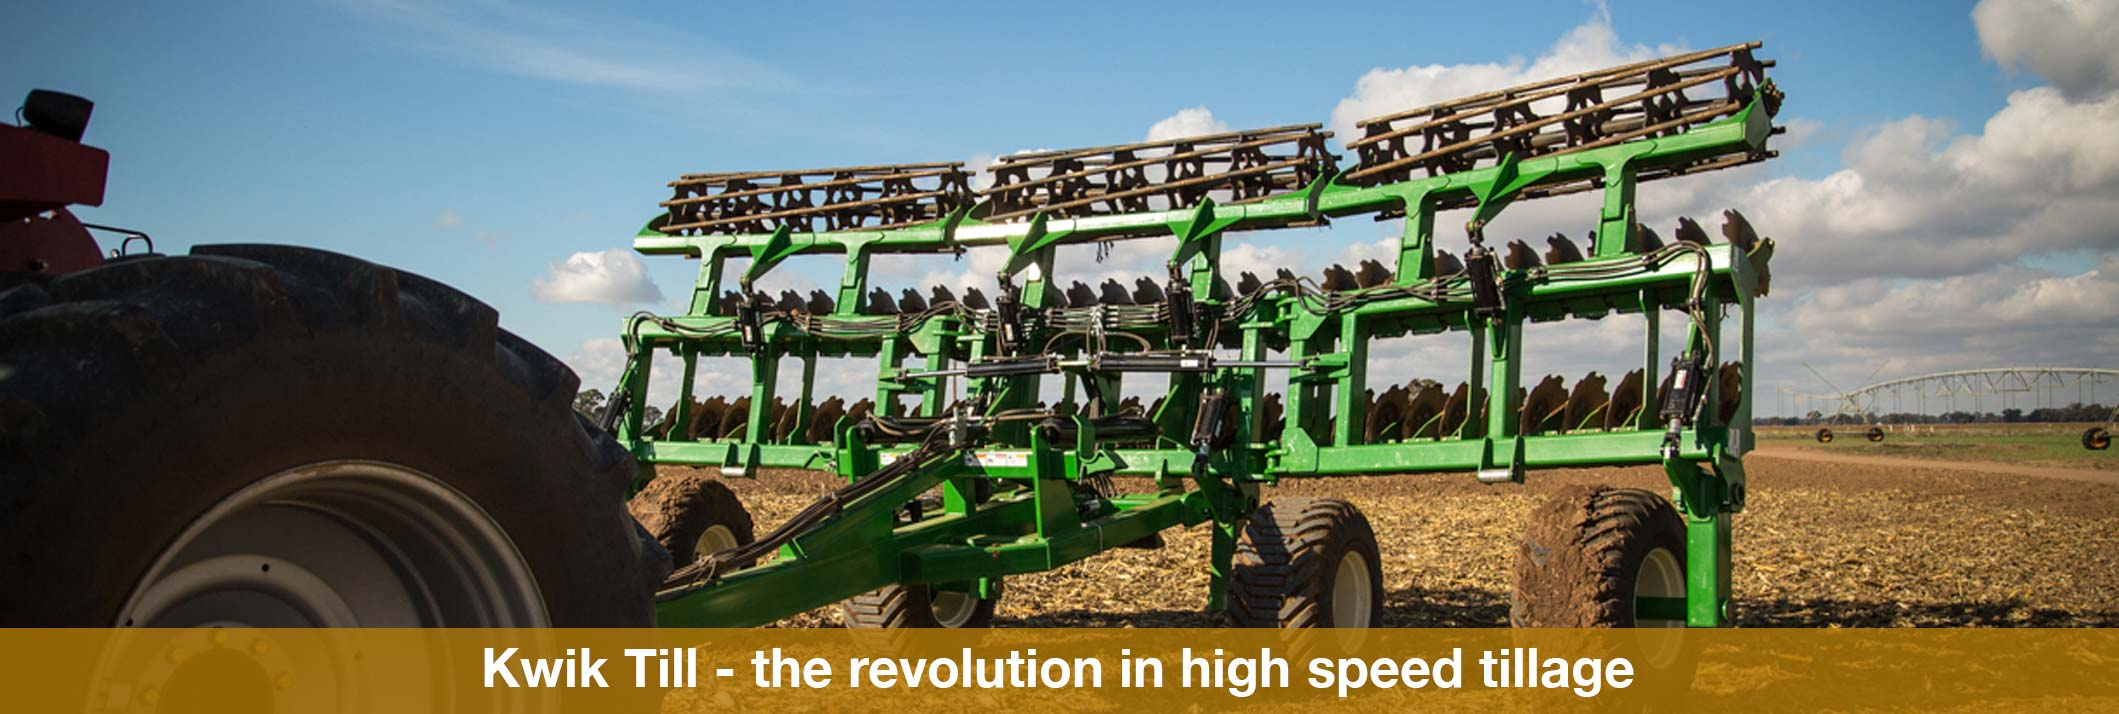 Eagle i Kwik Till – the revolution in high speed tillage